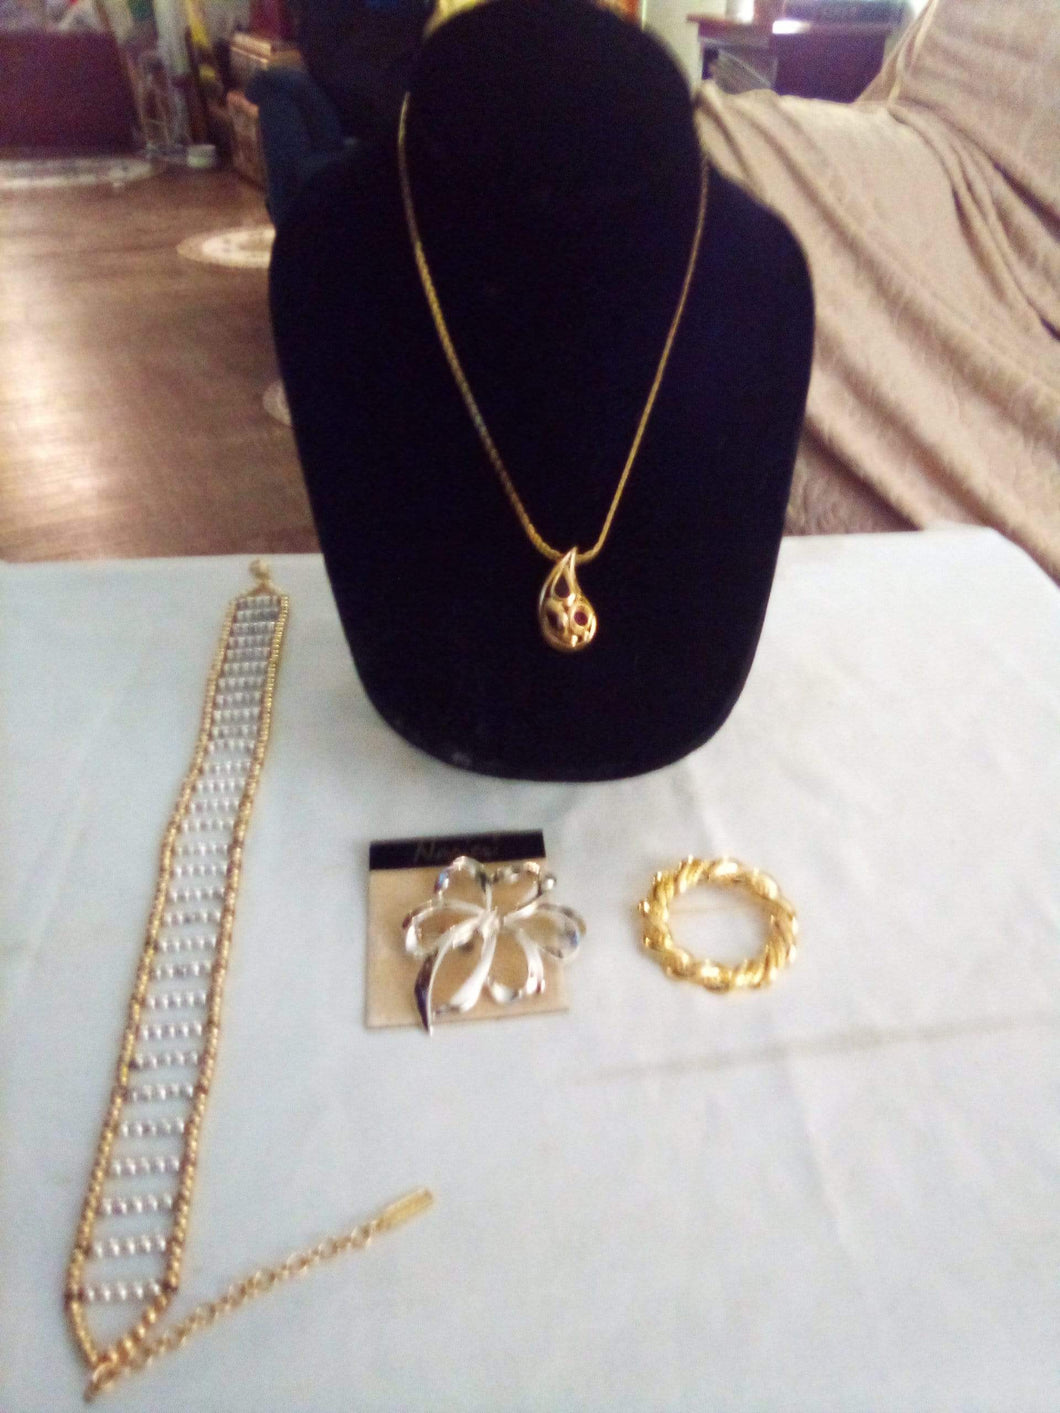 Napier marked jewelry lot - B&P'sringsnthings